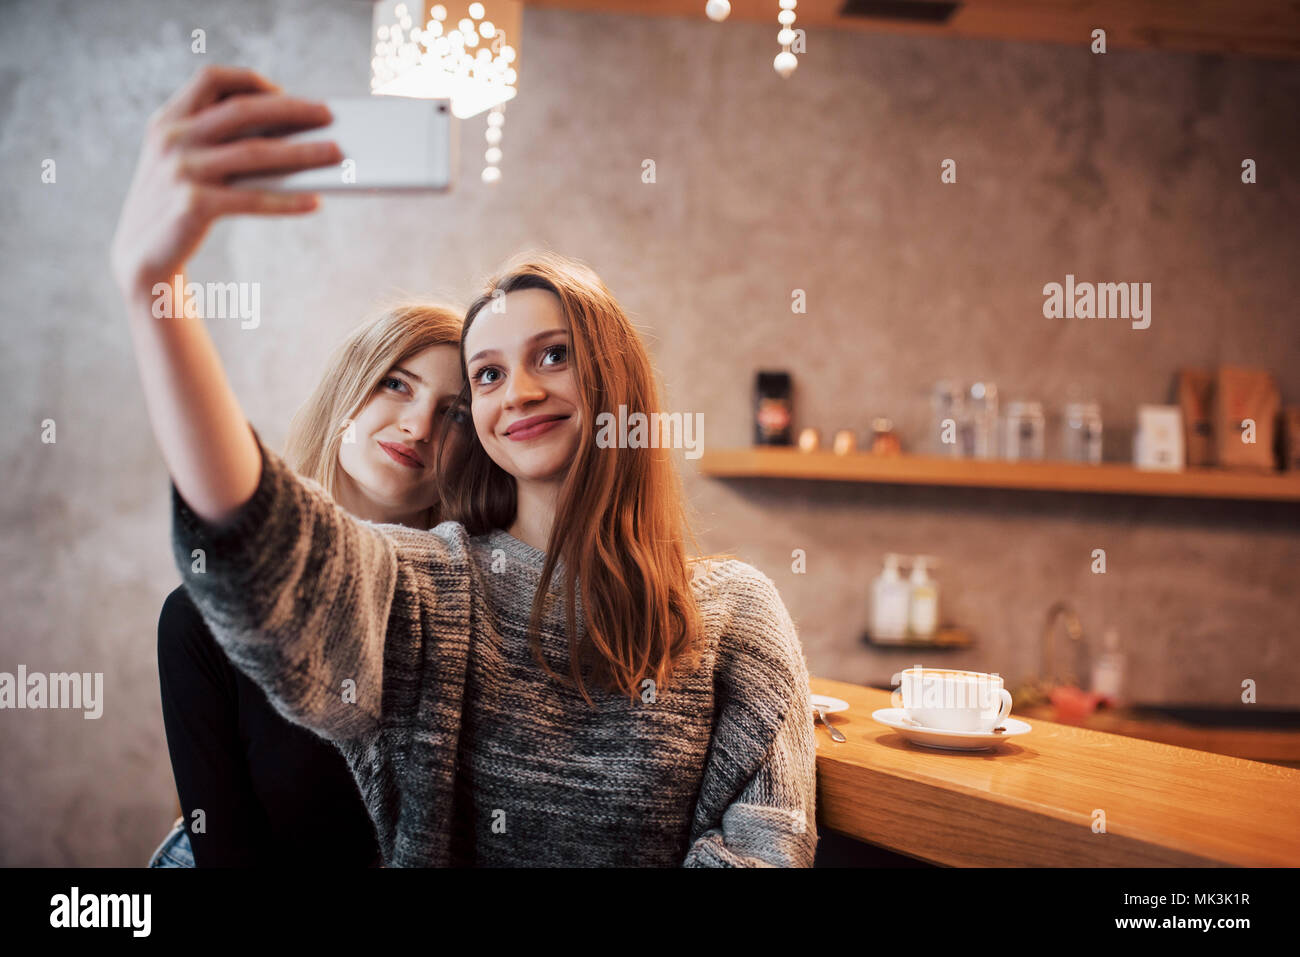 Two friends drinking coffee in a cafe, taking selfies with a smart phone and having fun making funny faces. Focus on the girl on the left Stock Photo